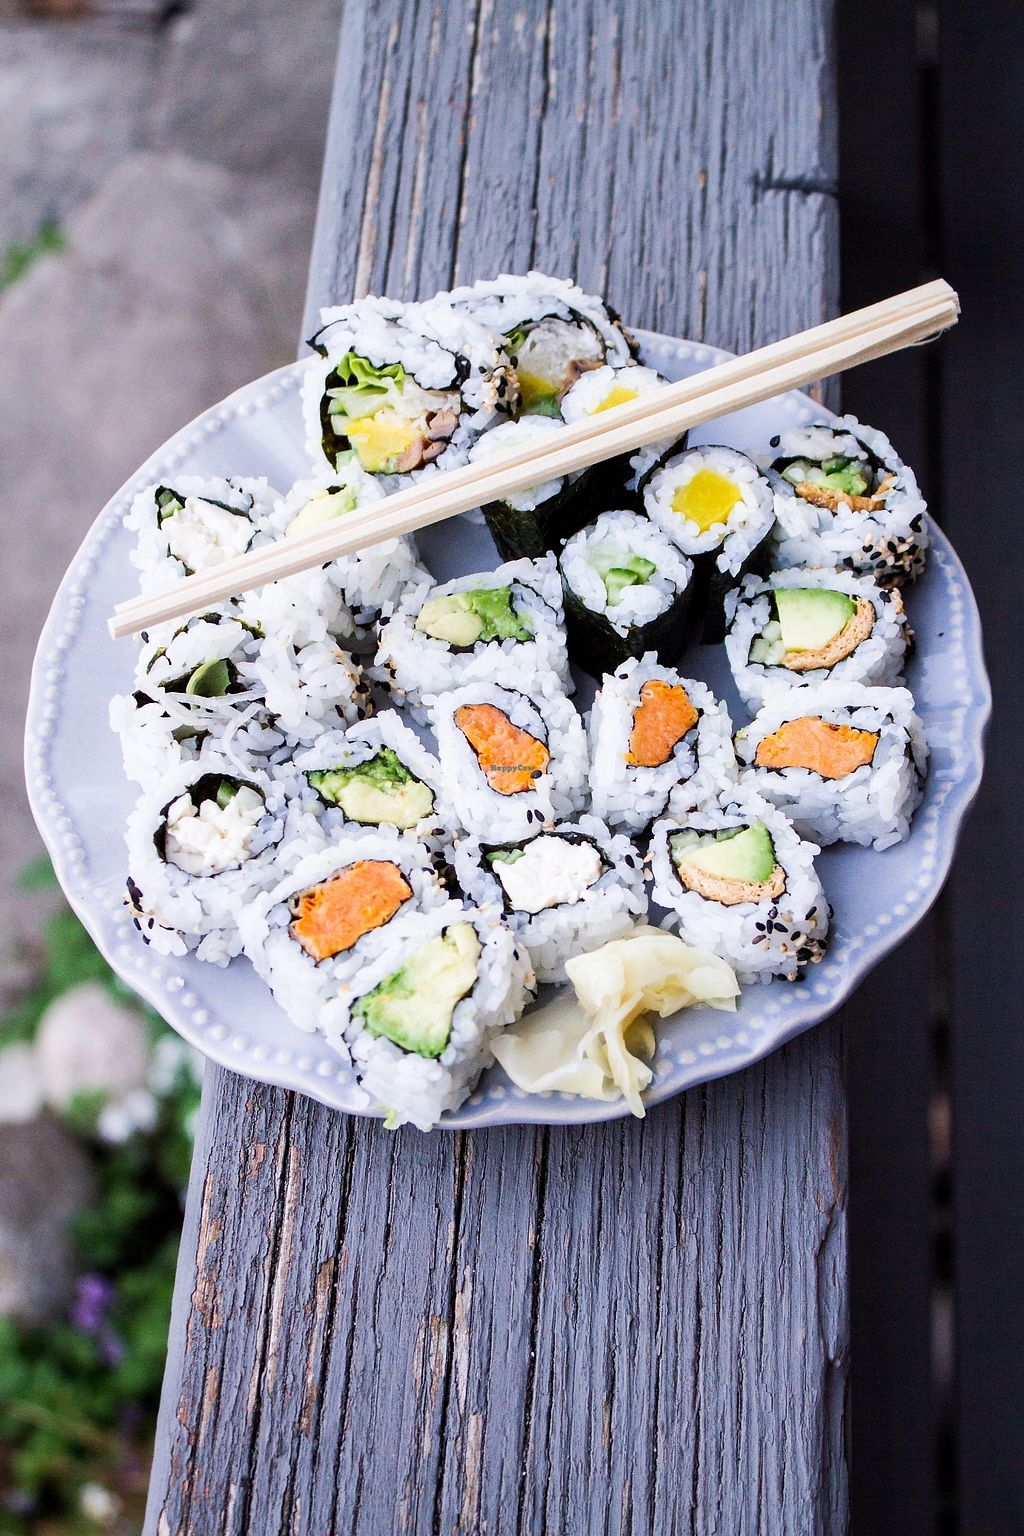 """Photo of Capilano Sushi  by <a href=""""/members/profile/jileila"""">jileila</a> <br/>Veggie Selection <br/> November 10, 2017  - <a href='/contact/abuse/image/104711/323779'>Report</a>"""